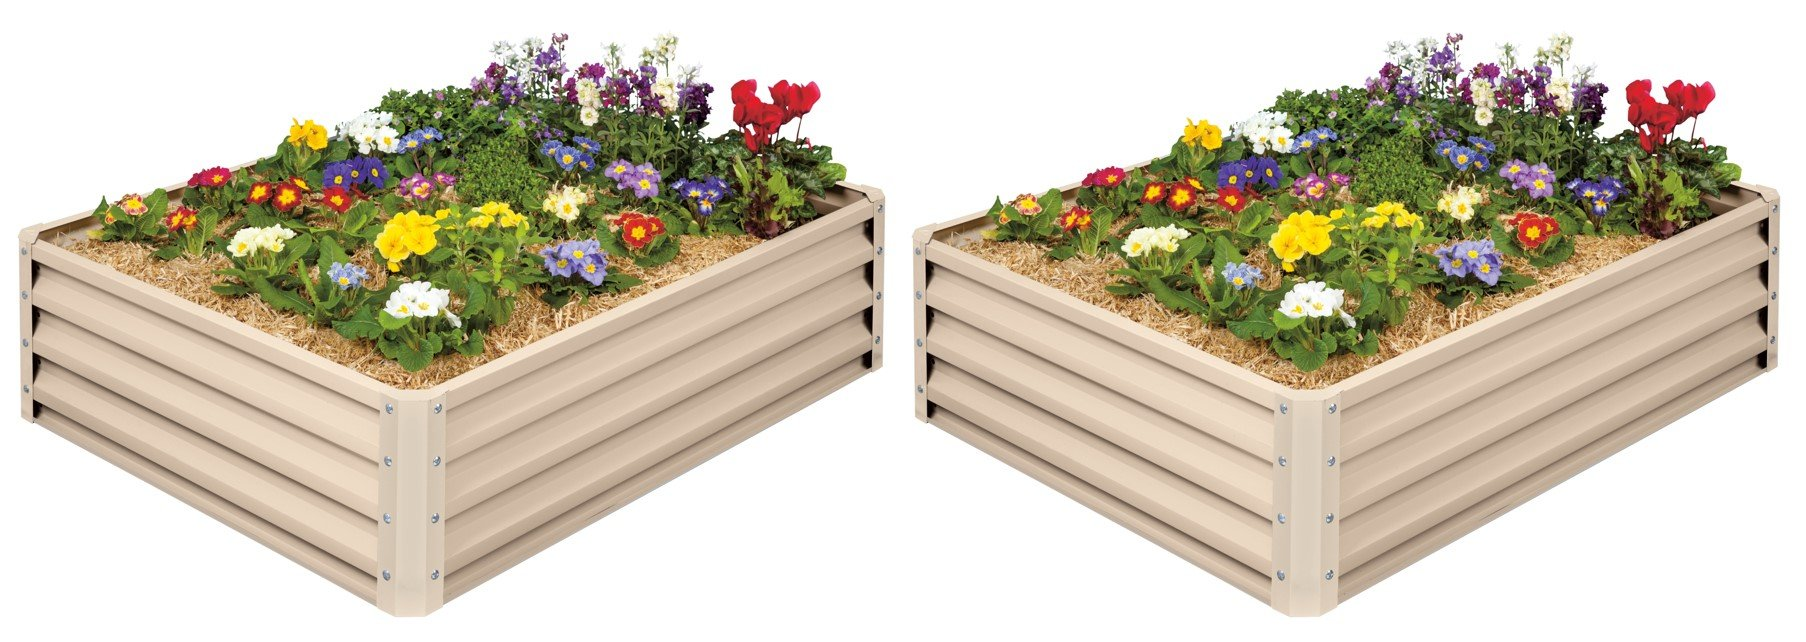 Metal Raised Garden Bed Kit - Elevated Planter Box For Growing Herbs, Vegetables, Flowers, and Succulents (2)